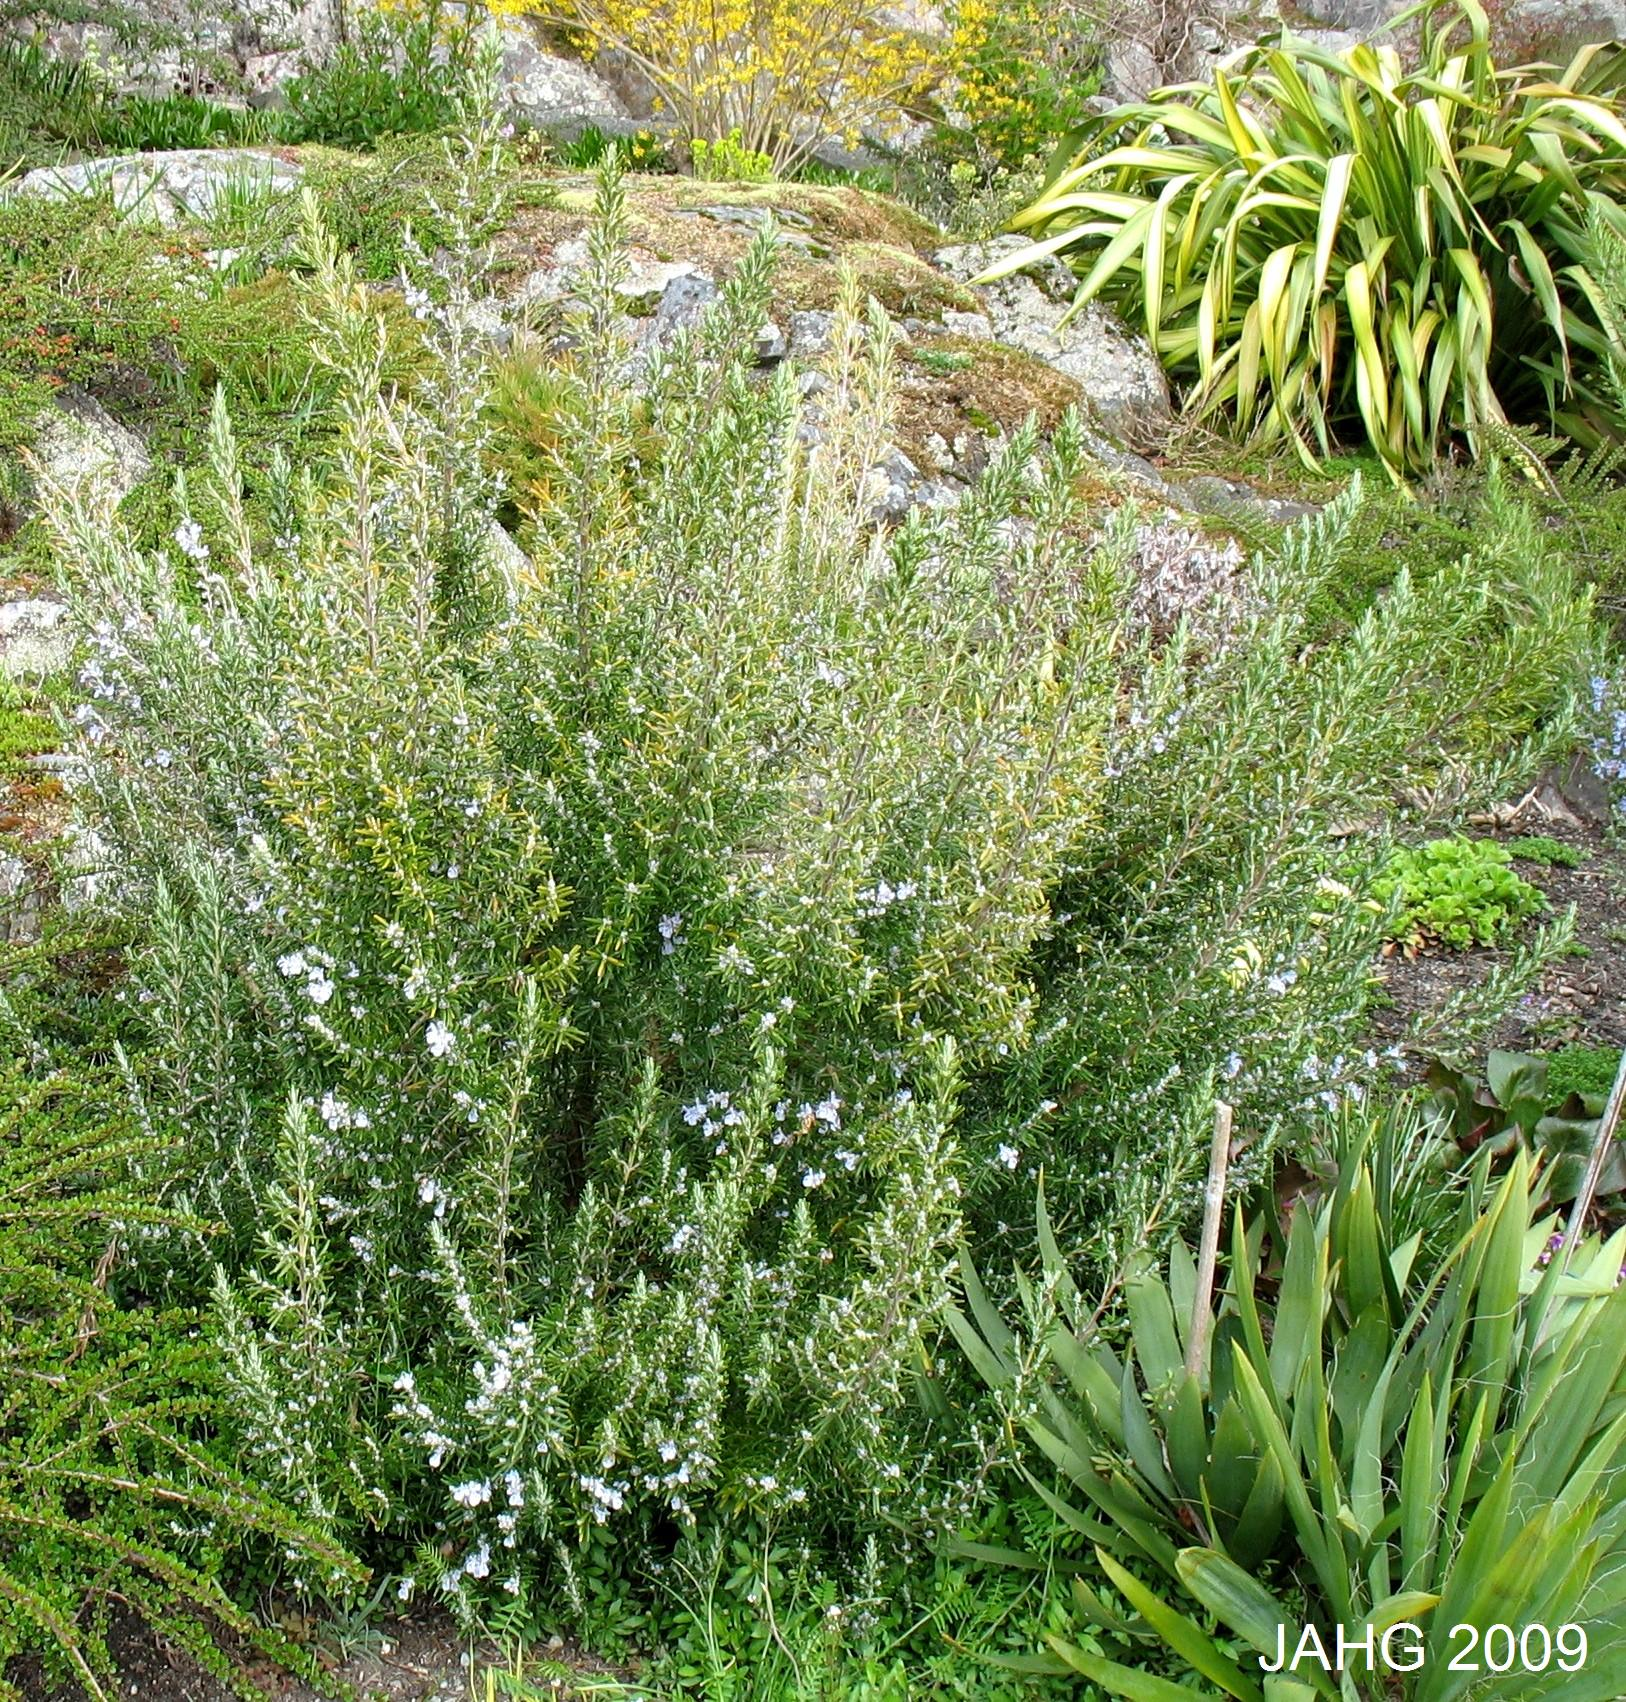 An Excellent Rosemary Plant Growing In the Terrace Garden at Government House.